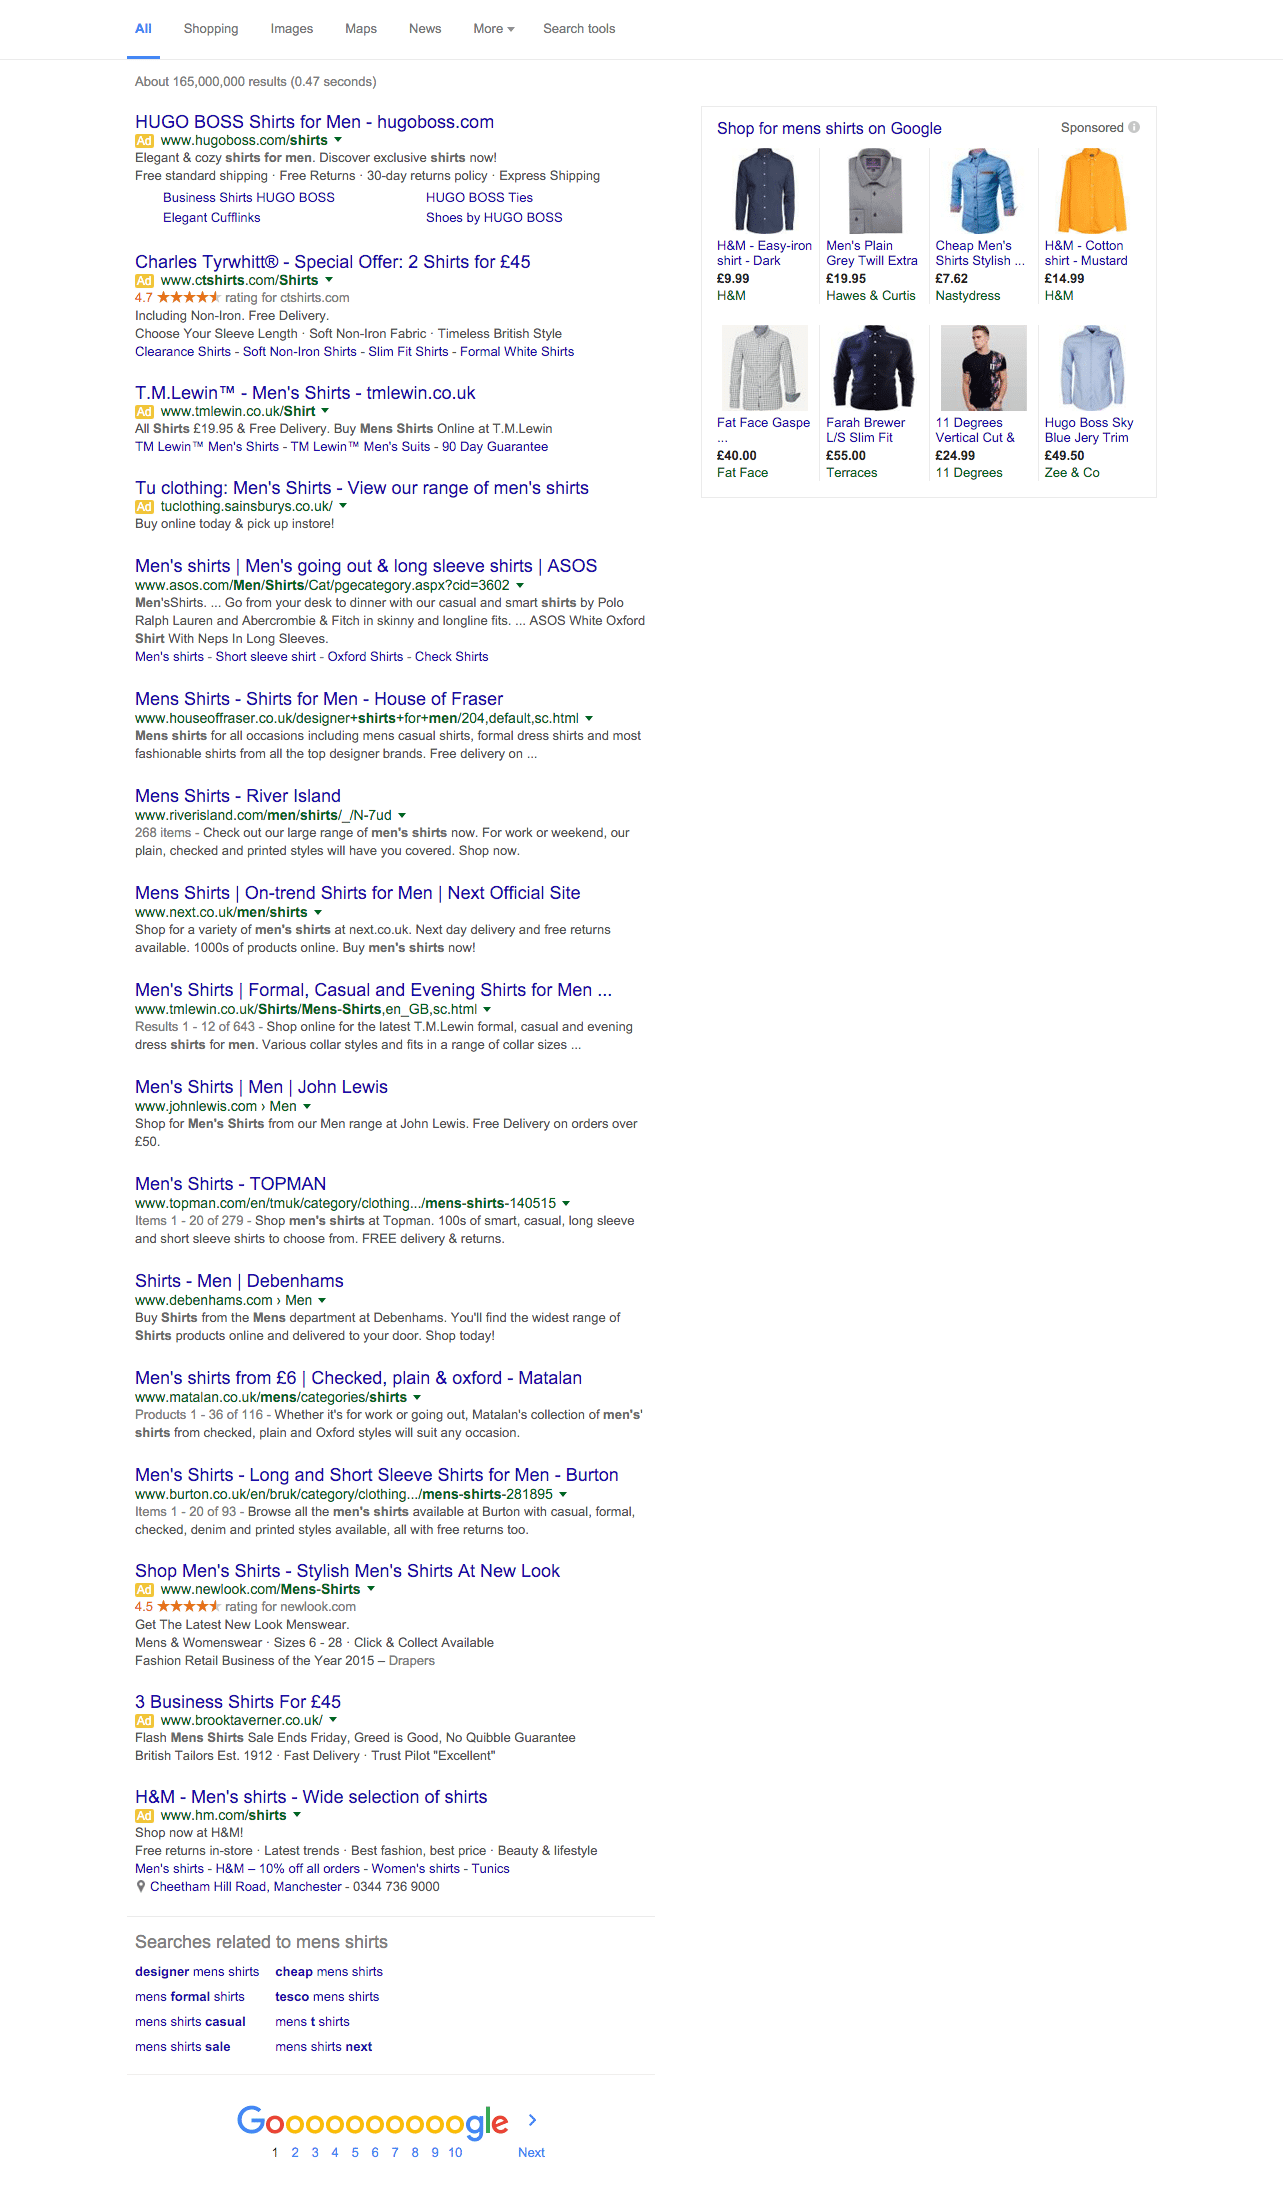 paid search ad positions